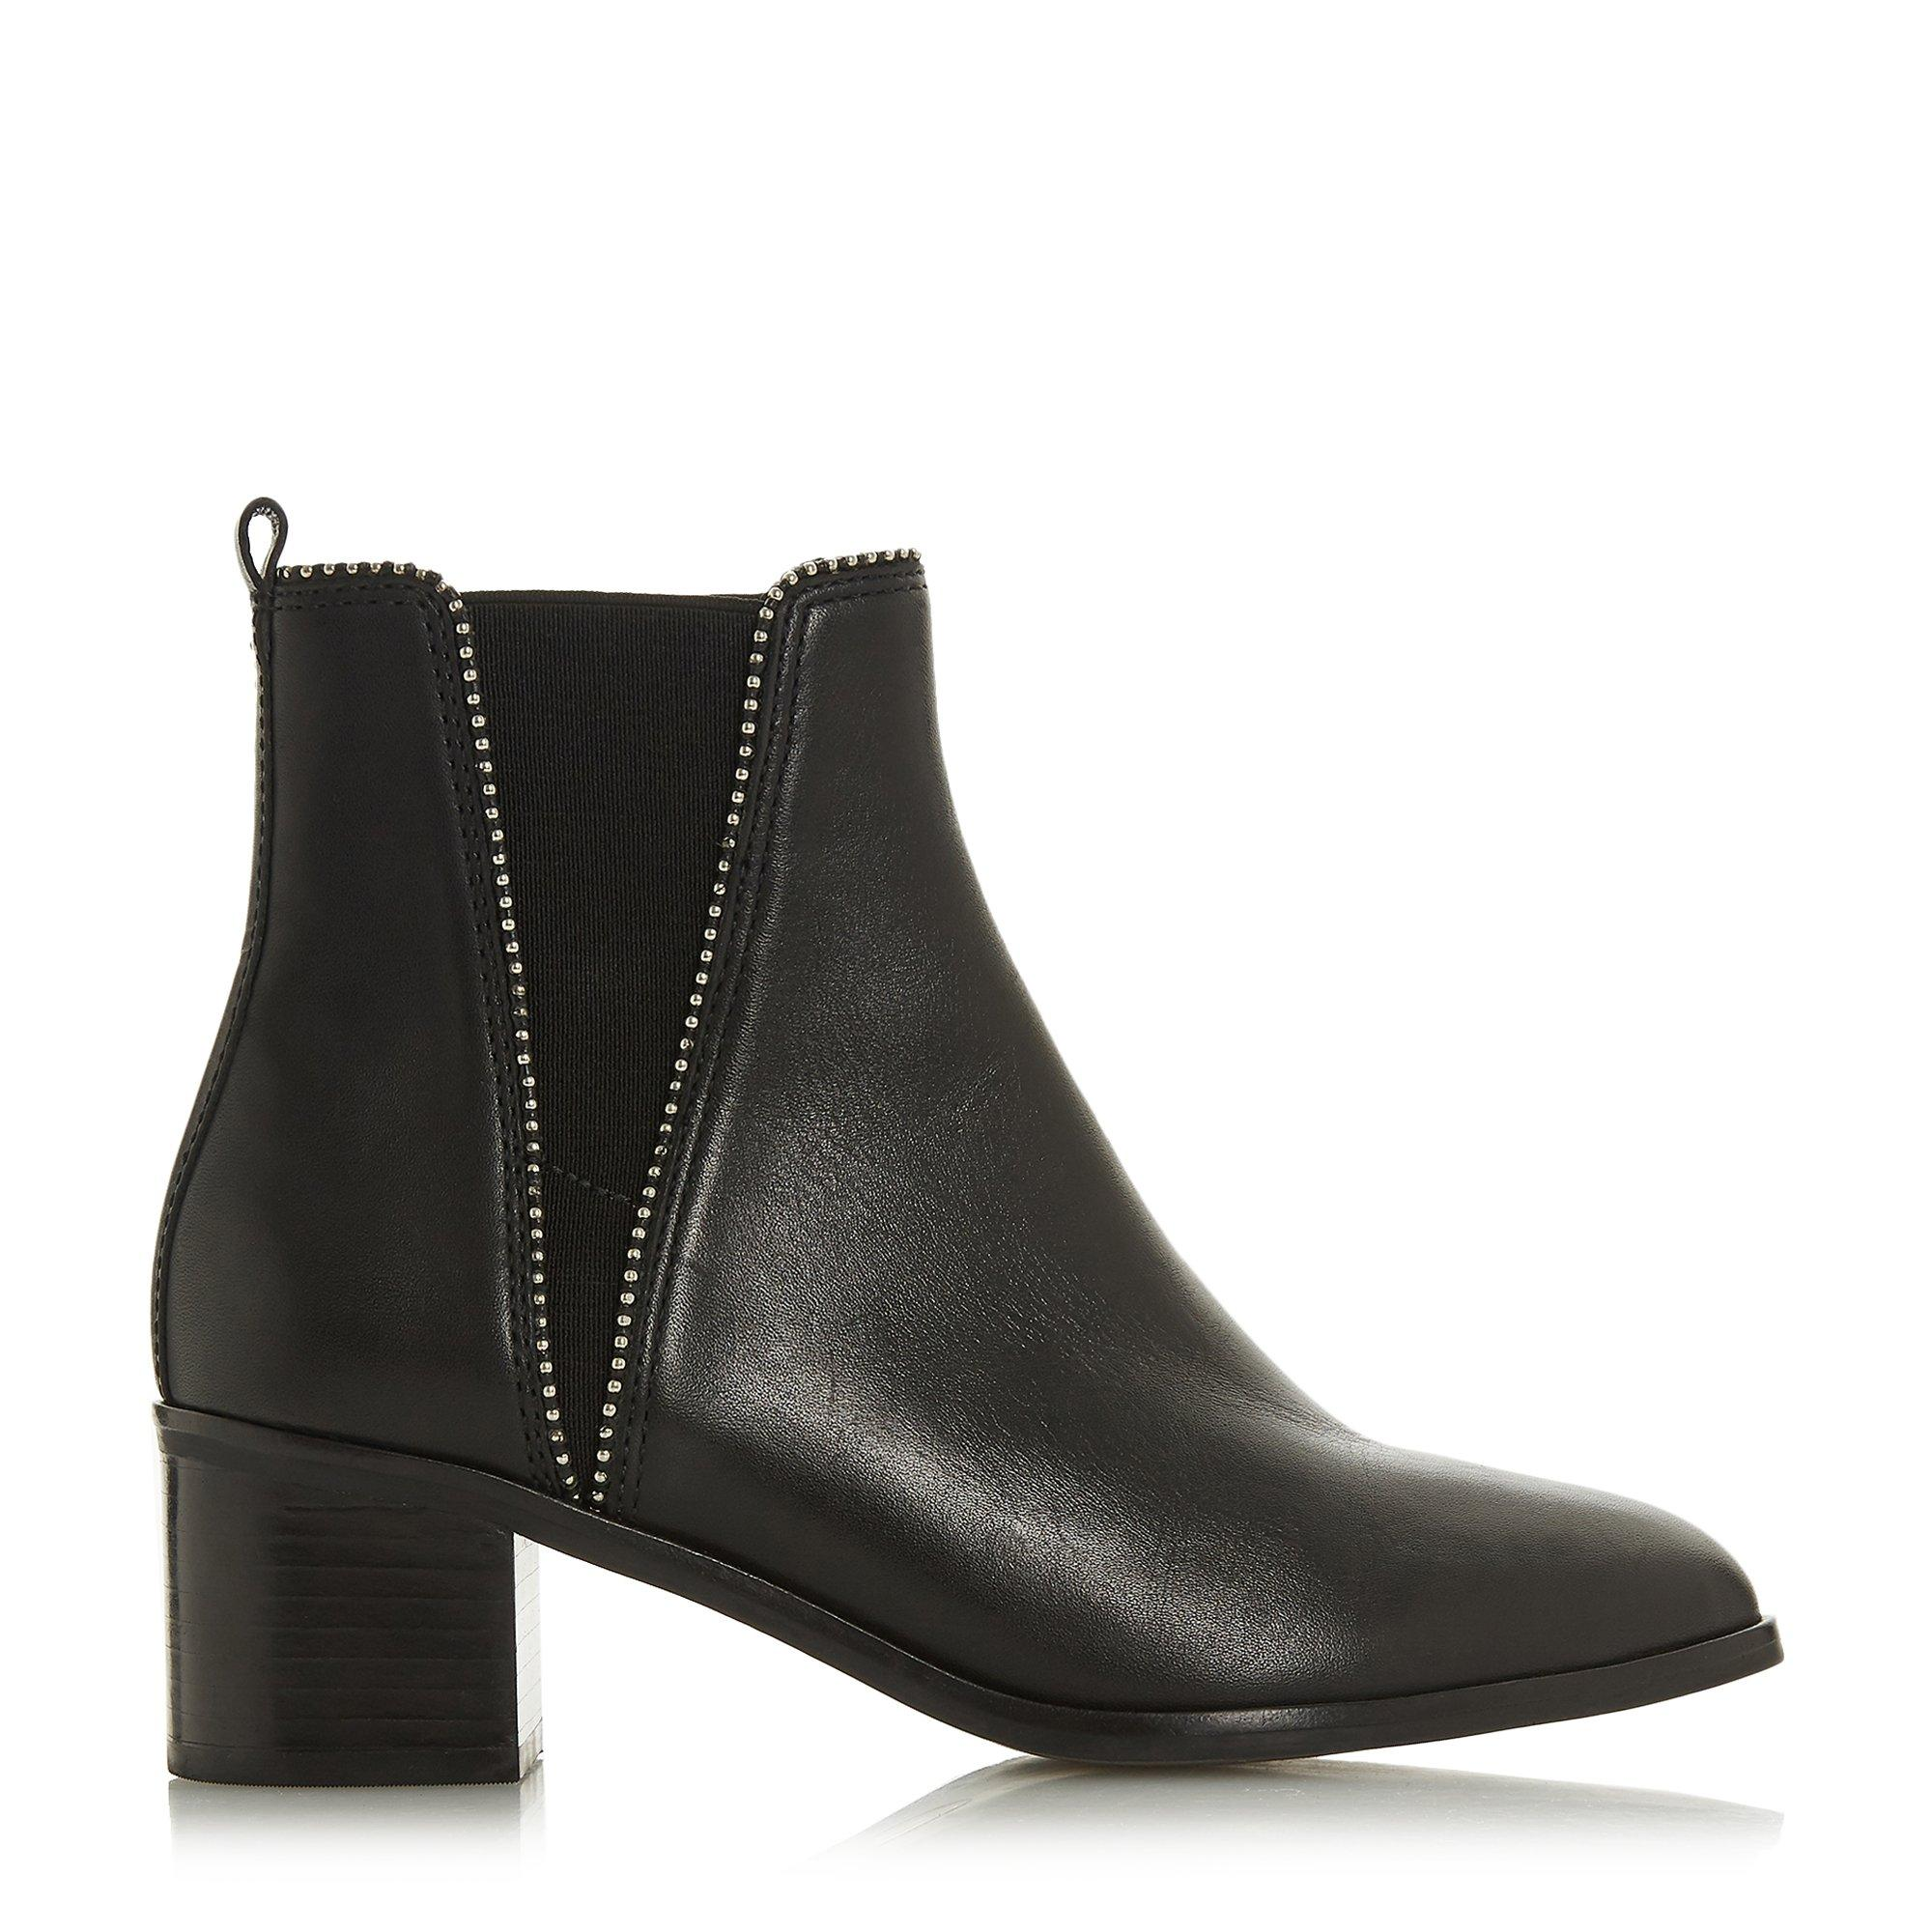 Ladies Ankle Boots - Ankle Boots For Women   Dune London